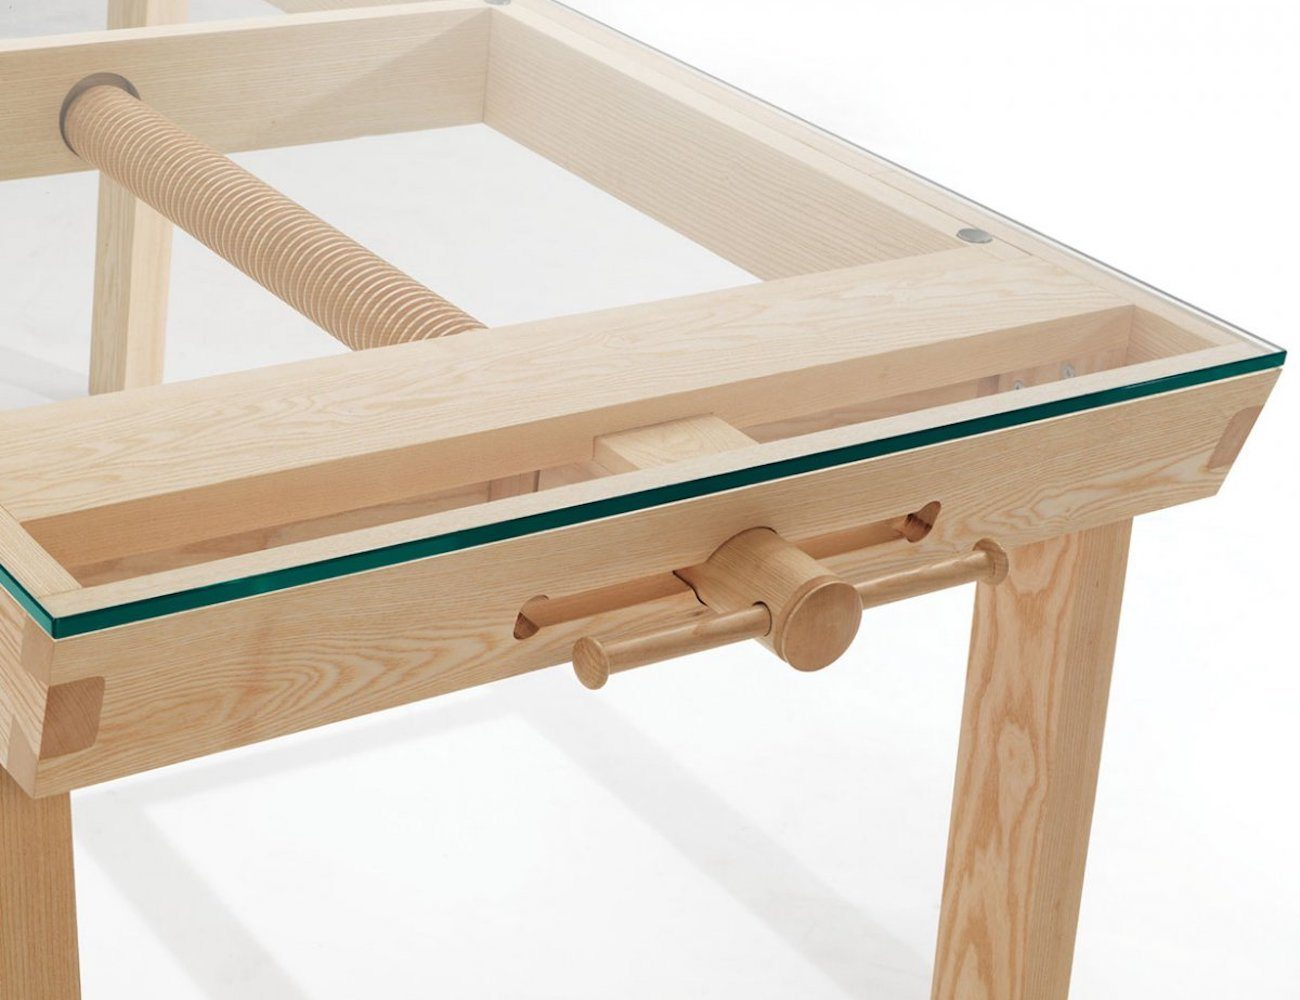 Banc Extendable Table by Linfa Design